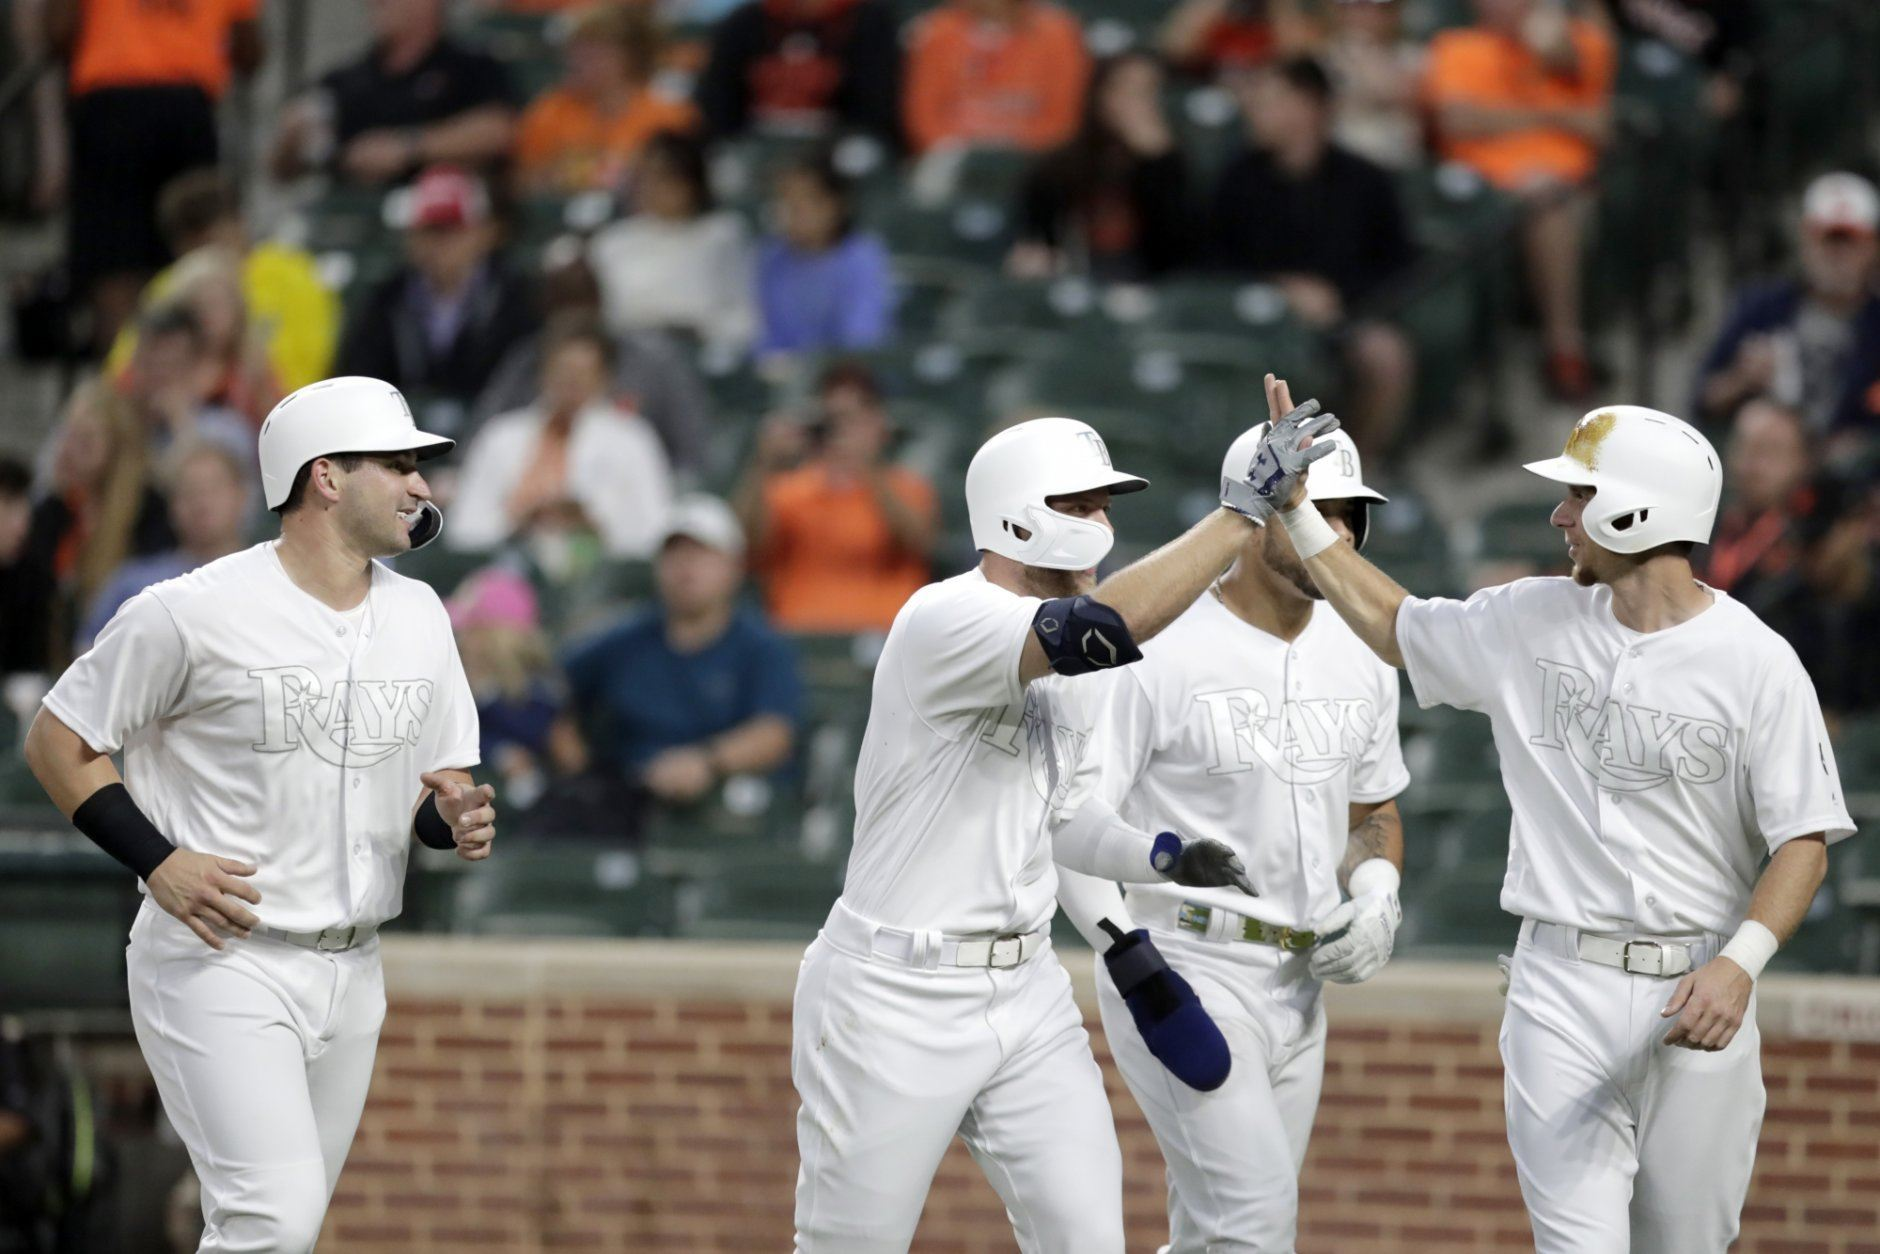 Tampa Bay Rays' Austin Meadows, center left, celebrates with Matt Duffy, right, as Mike Zunino, left, and Tommy Pham, back, look on after Meadows scored them all on a grand slam off Baltimore Orioles starting pitcher Ty Blach during the second inning of a baseball game, Friday, Aug. 23, 2019, in Baltimore. (AP Photo/Julio Cortez)